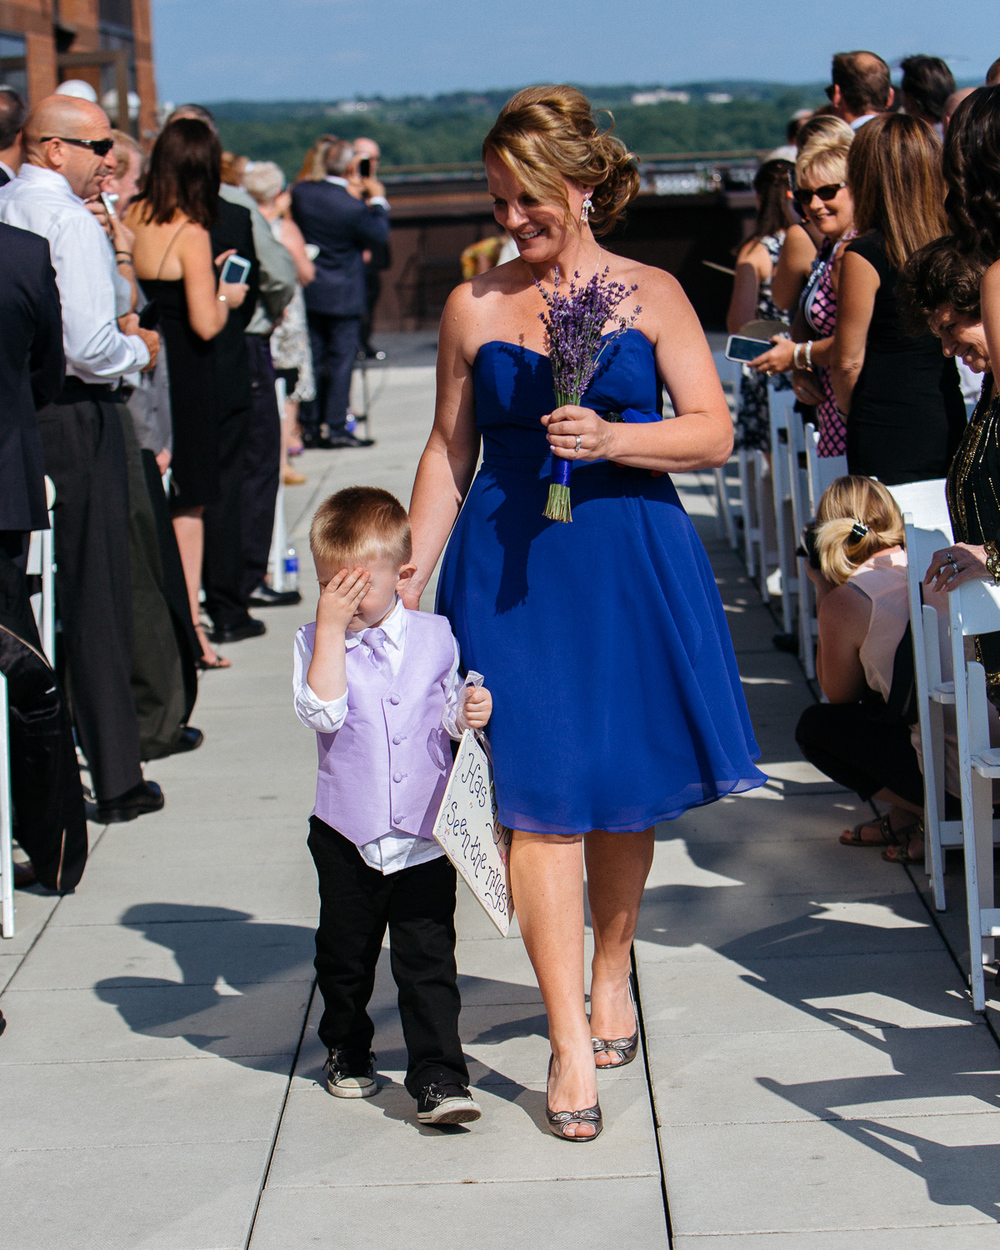 The ring bearer was feeling shy. It was awesome.